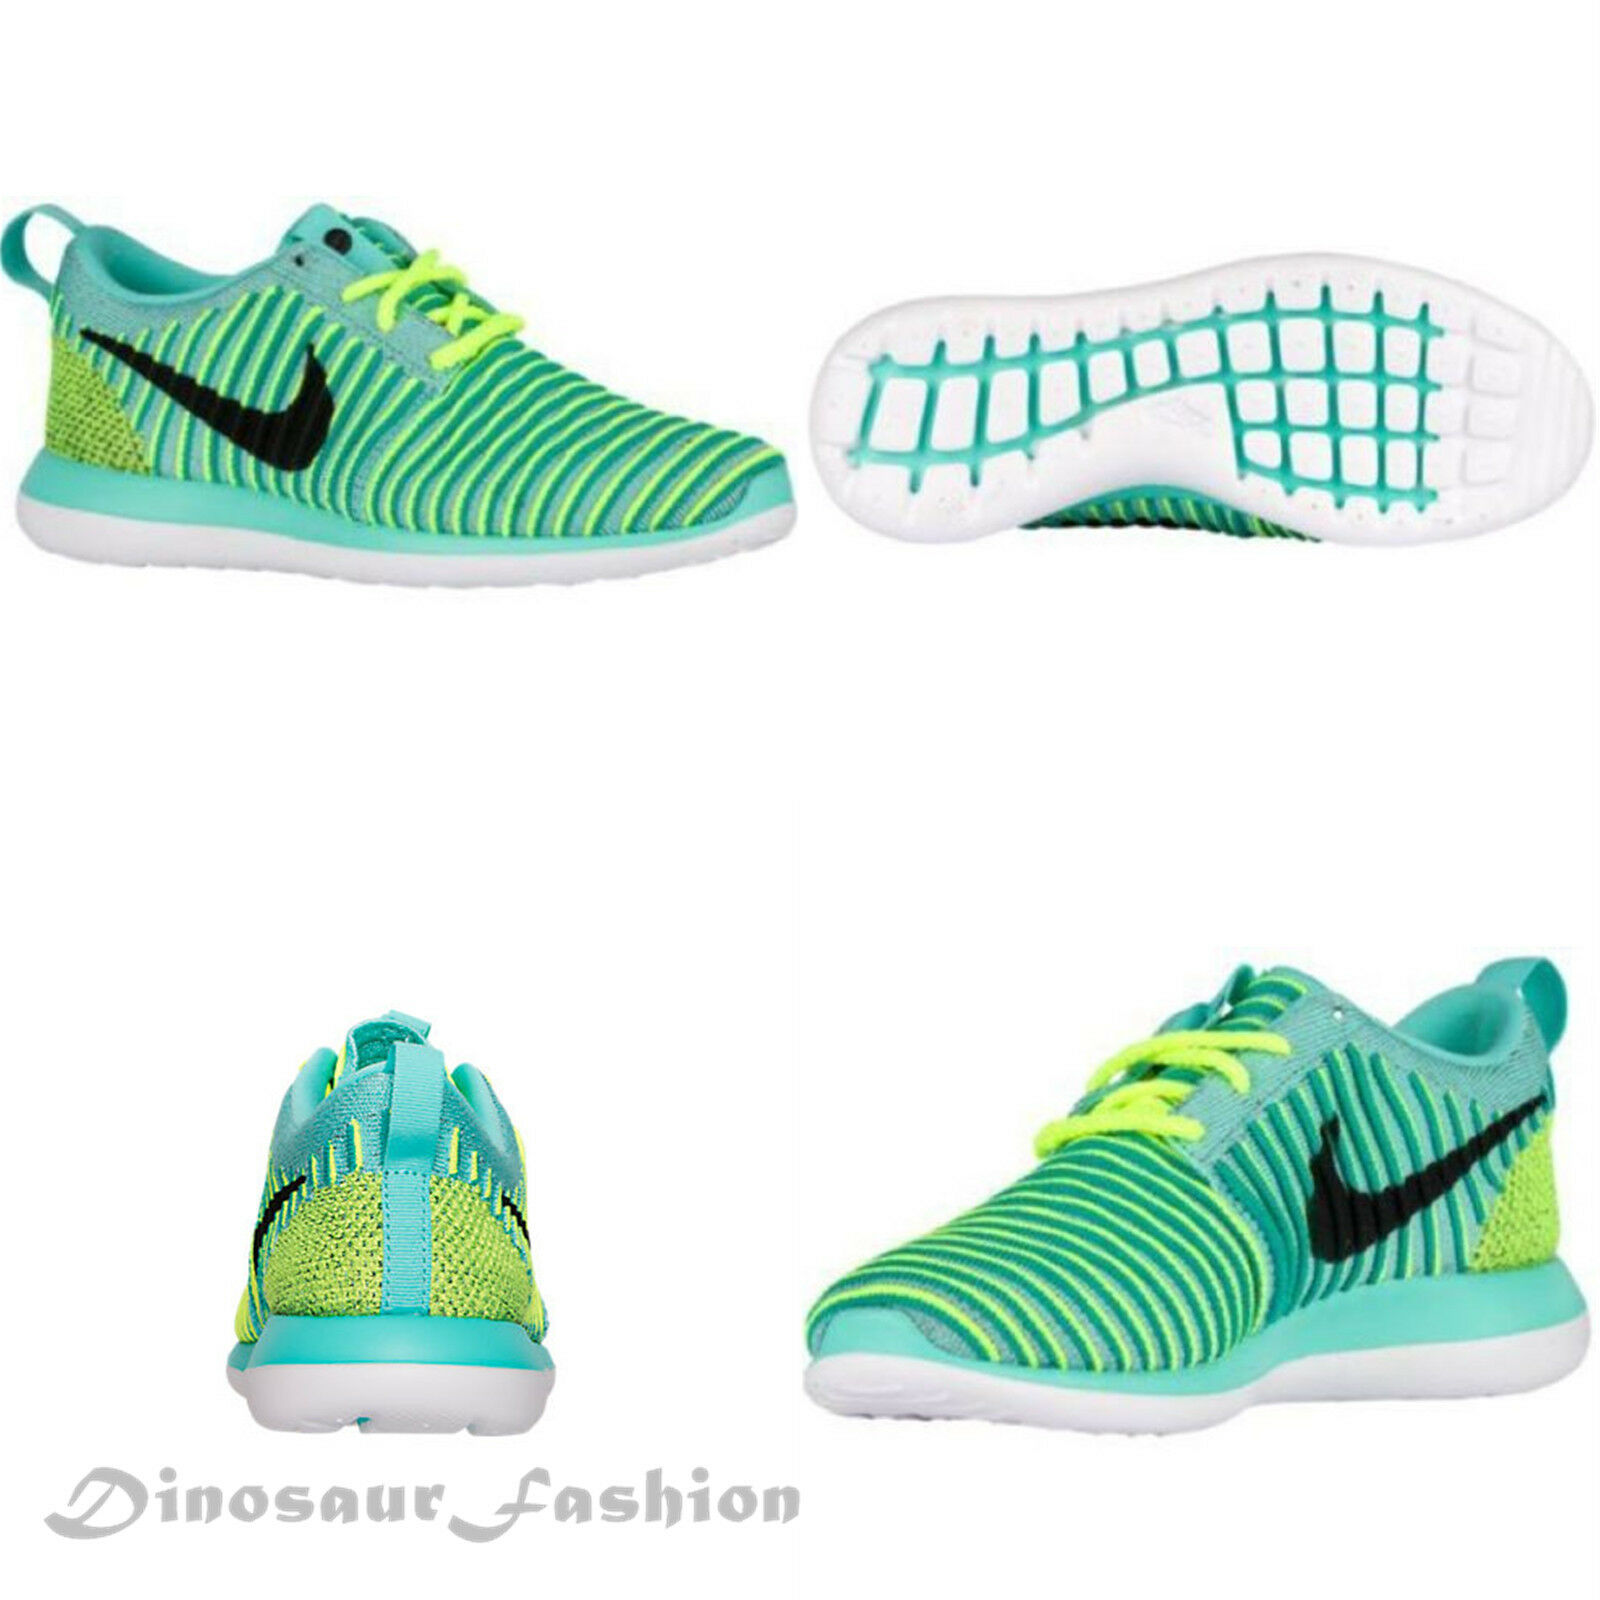 Nike ROSHE TWO FLYKNIT (GS) (844620 300) Casual Sneakers shoes,New with Box.